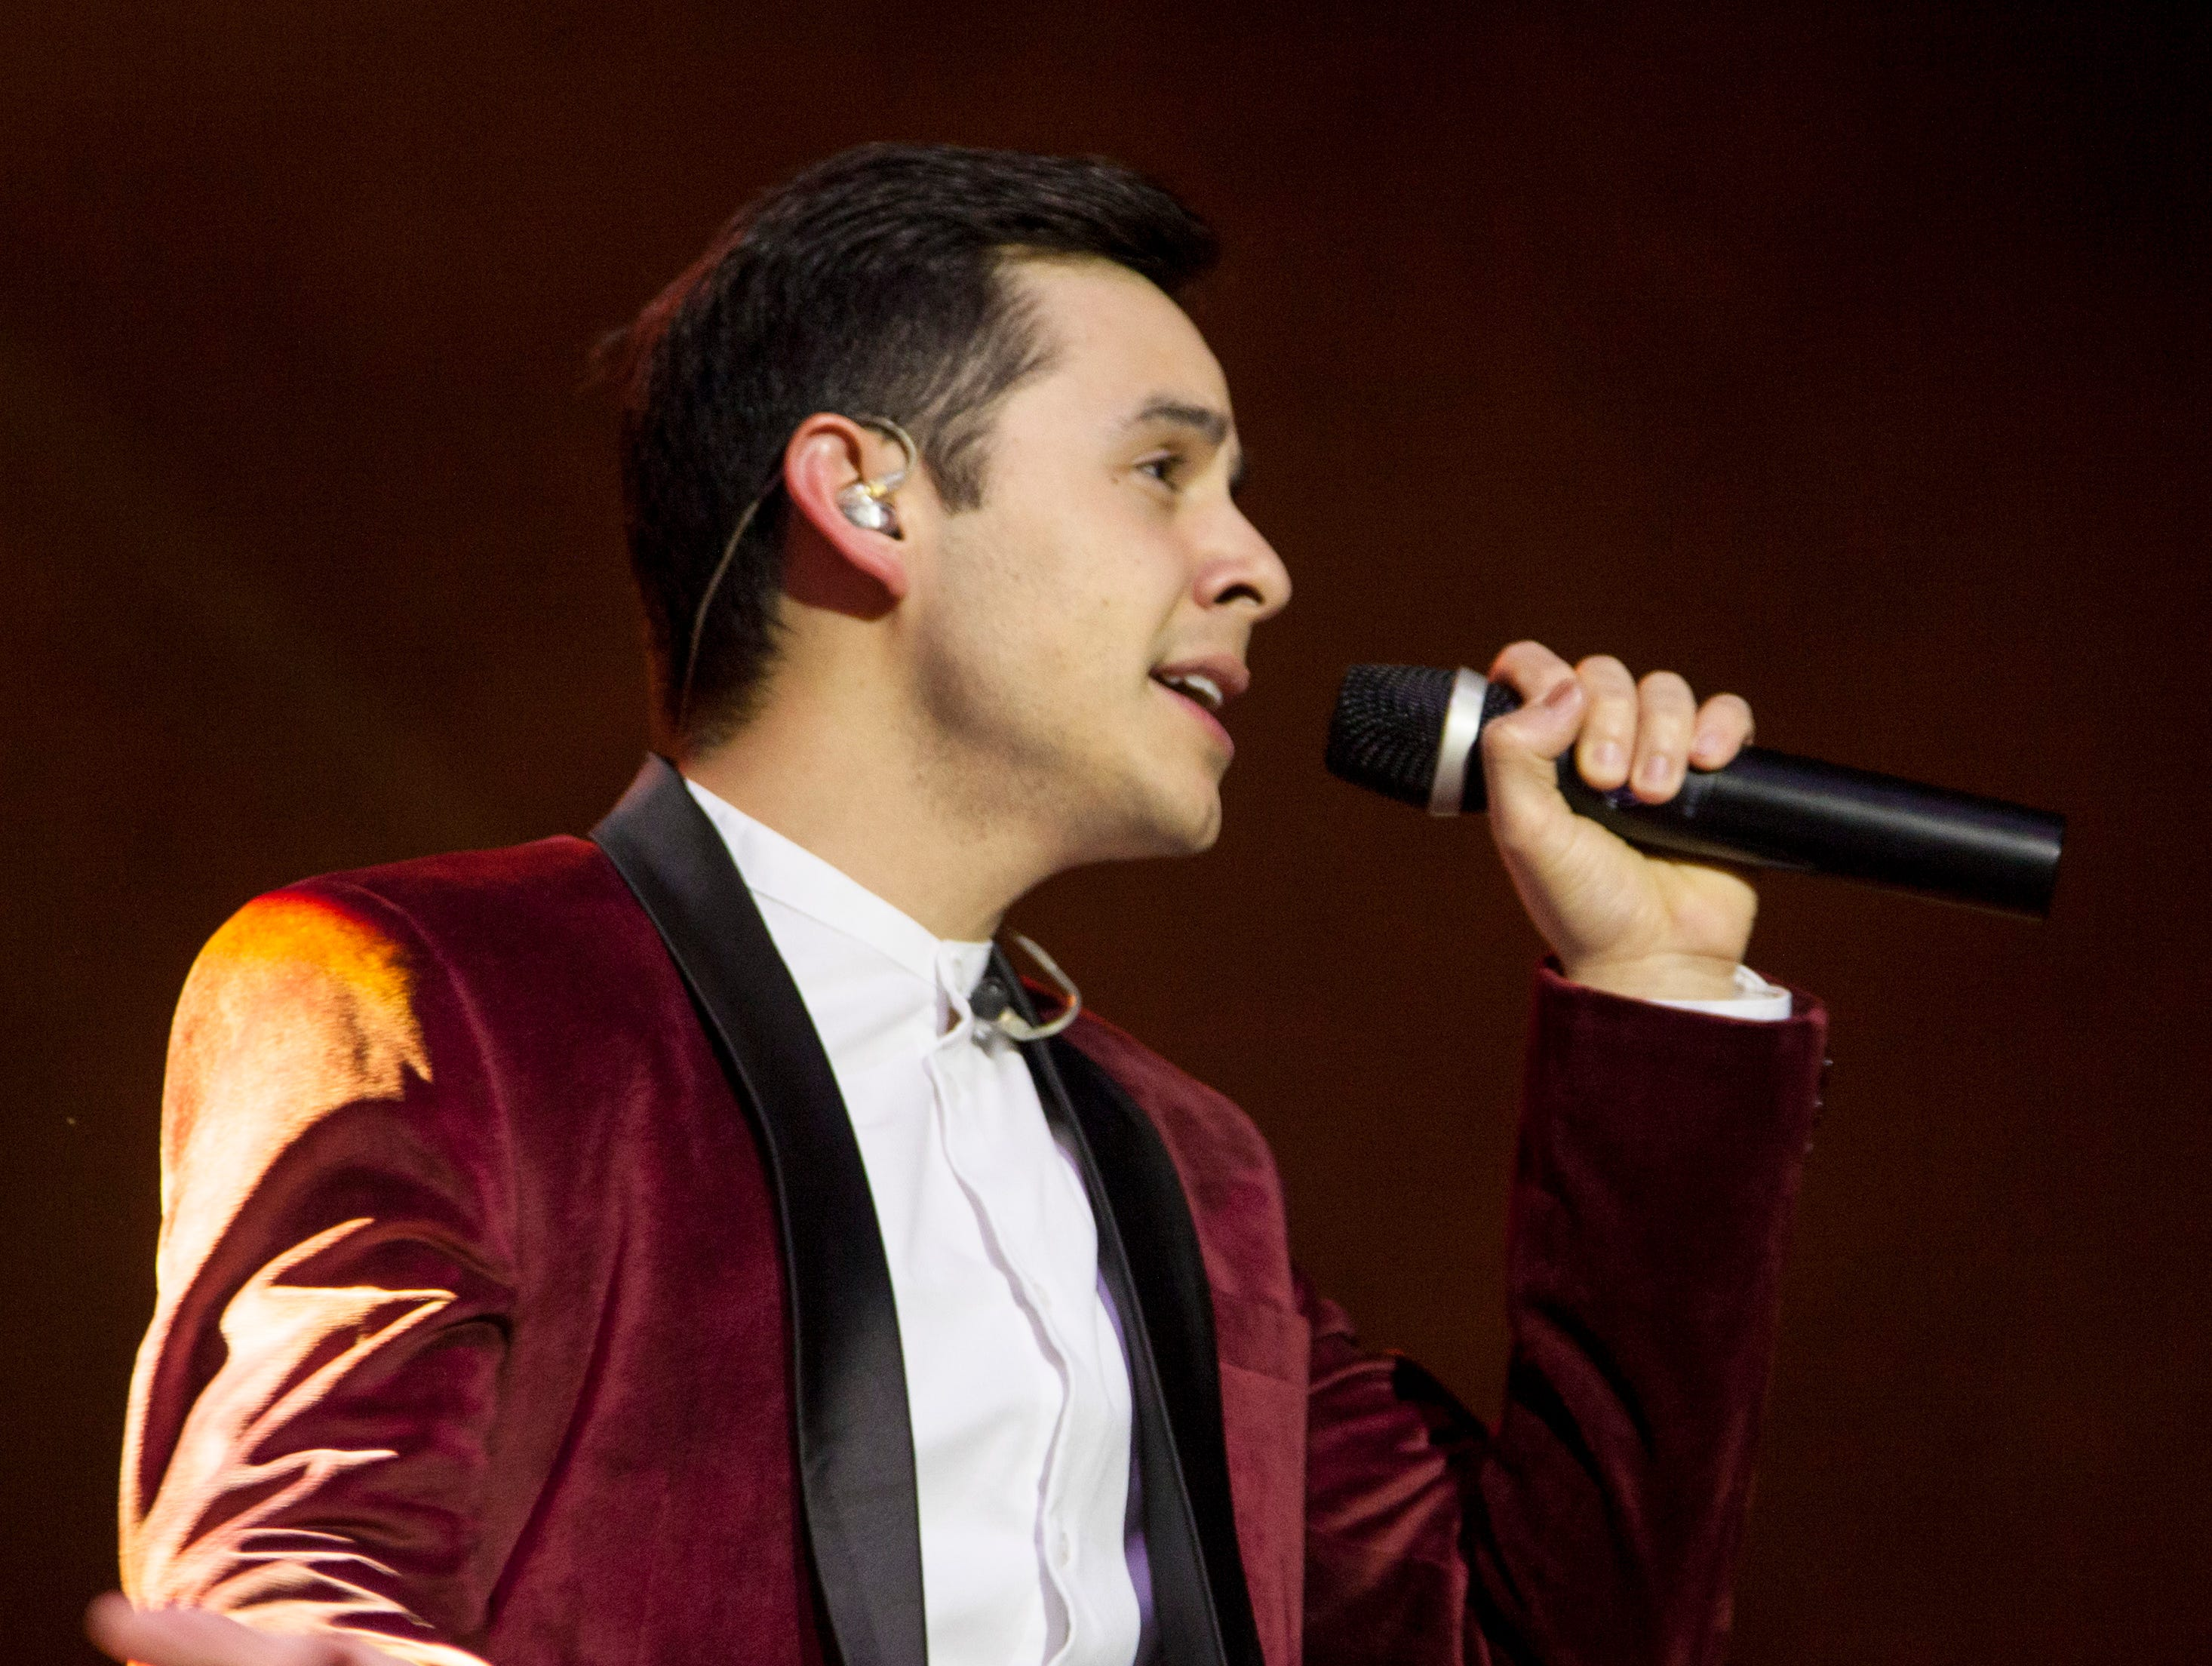 David Archuleta performs Christmas songs at the Burns Arena Monday, Dec. 3, 2018.